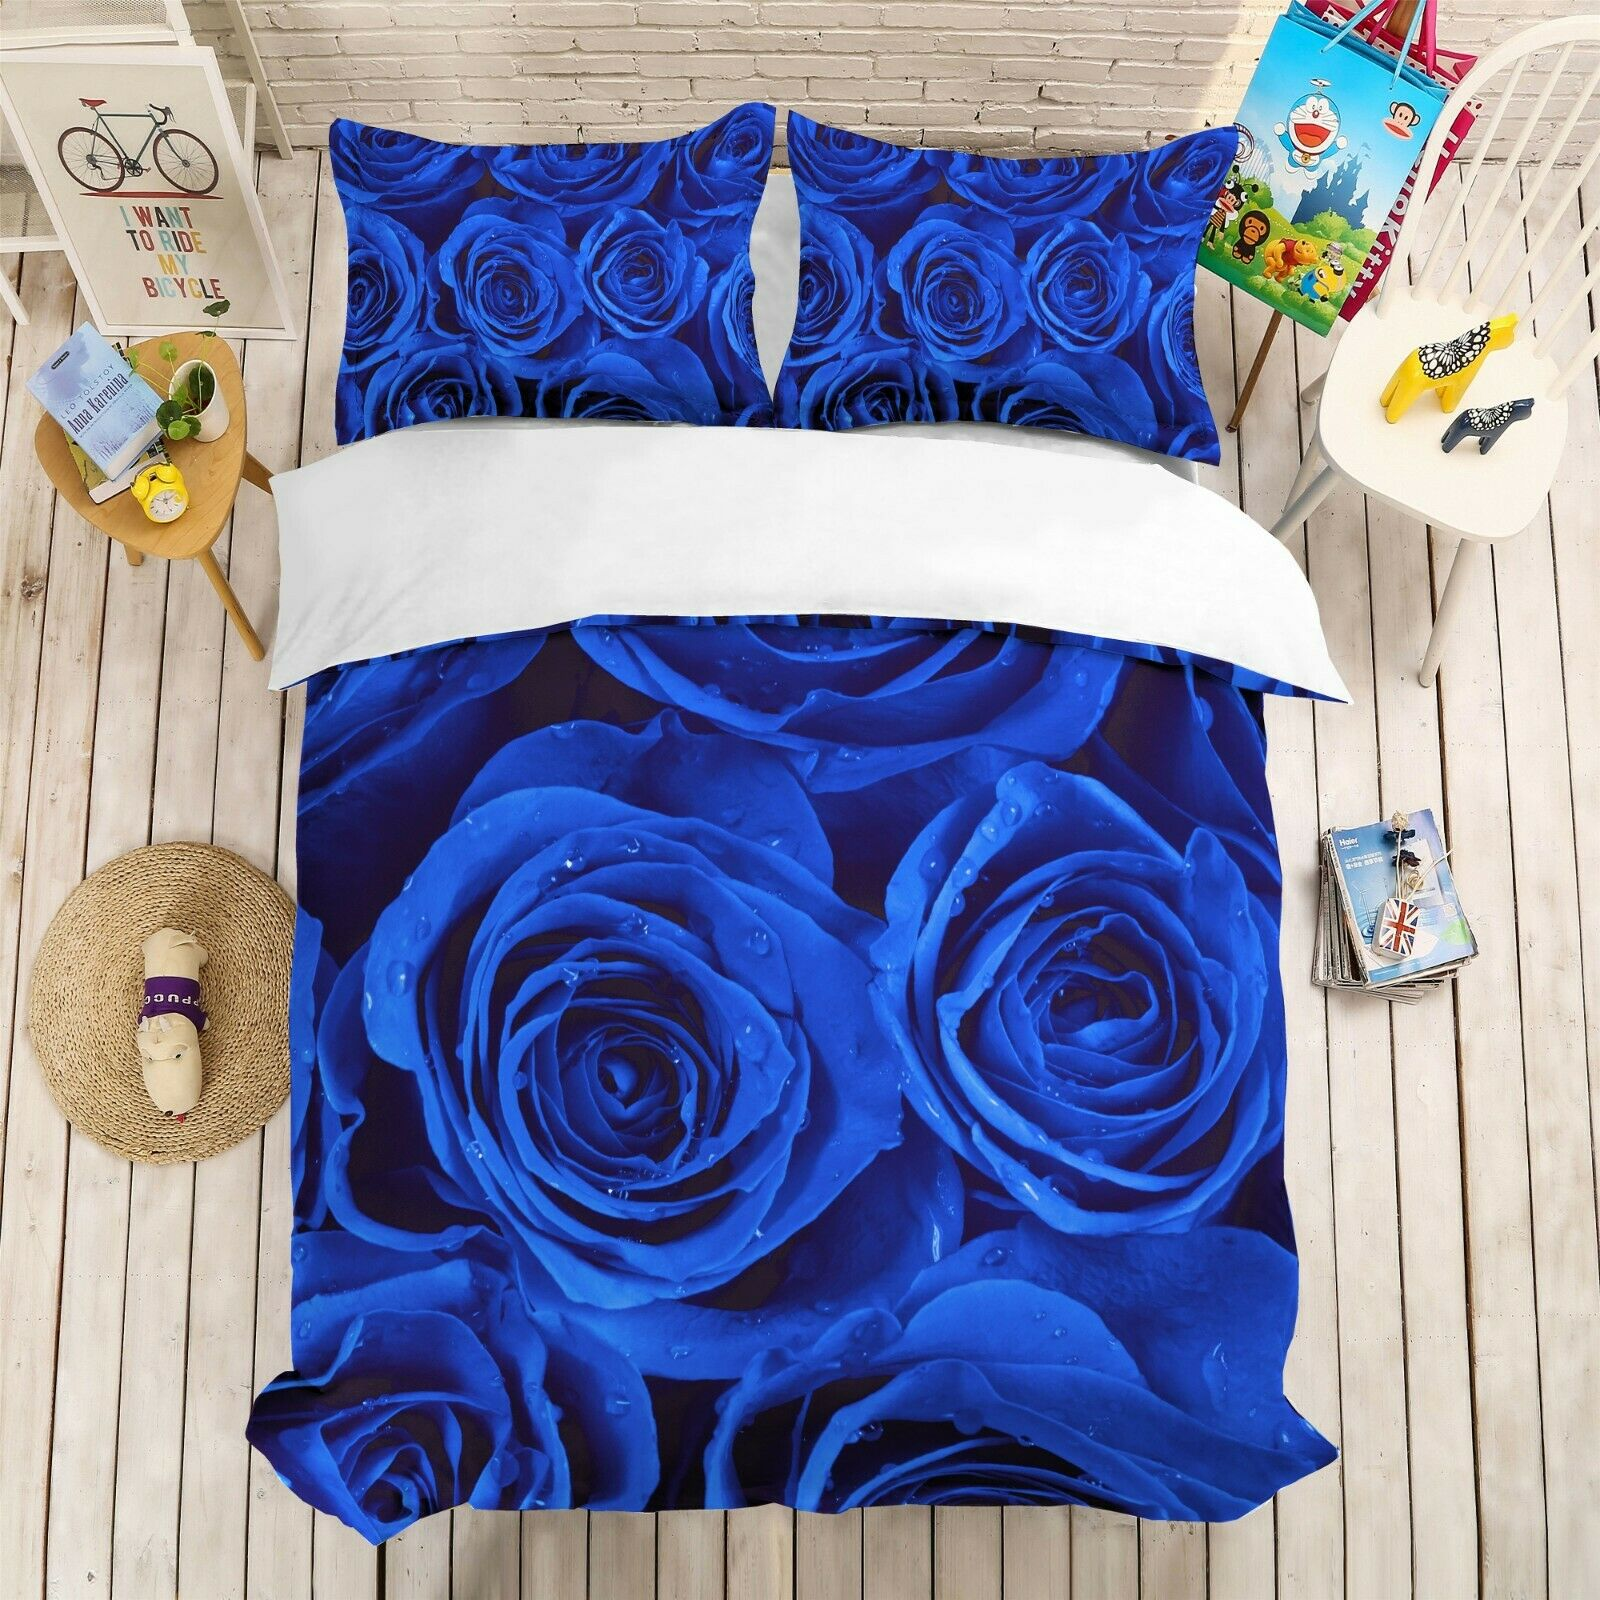 3D blu Enchantress Quilt Cover Set Bedding Duvet Cover Single Queen King 3pcs 7